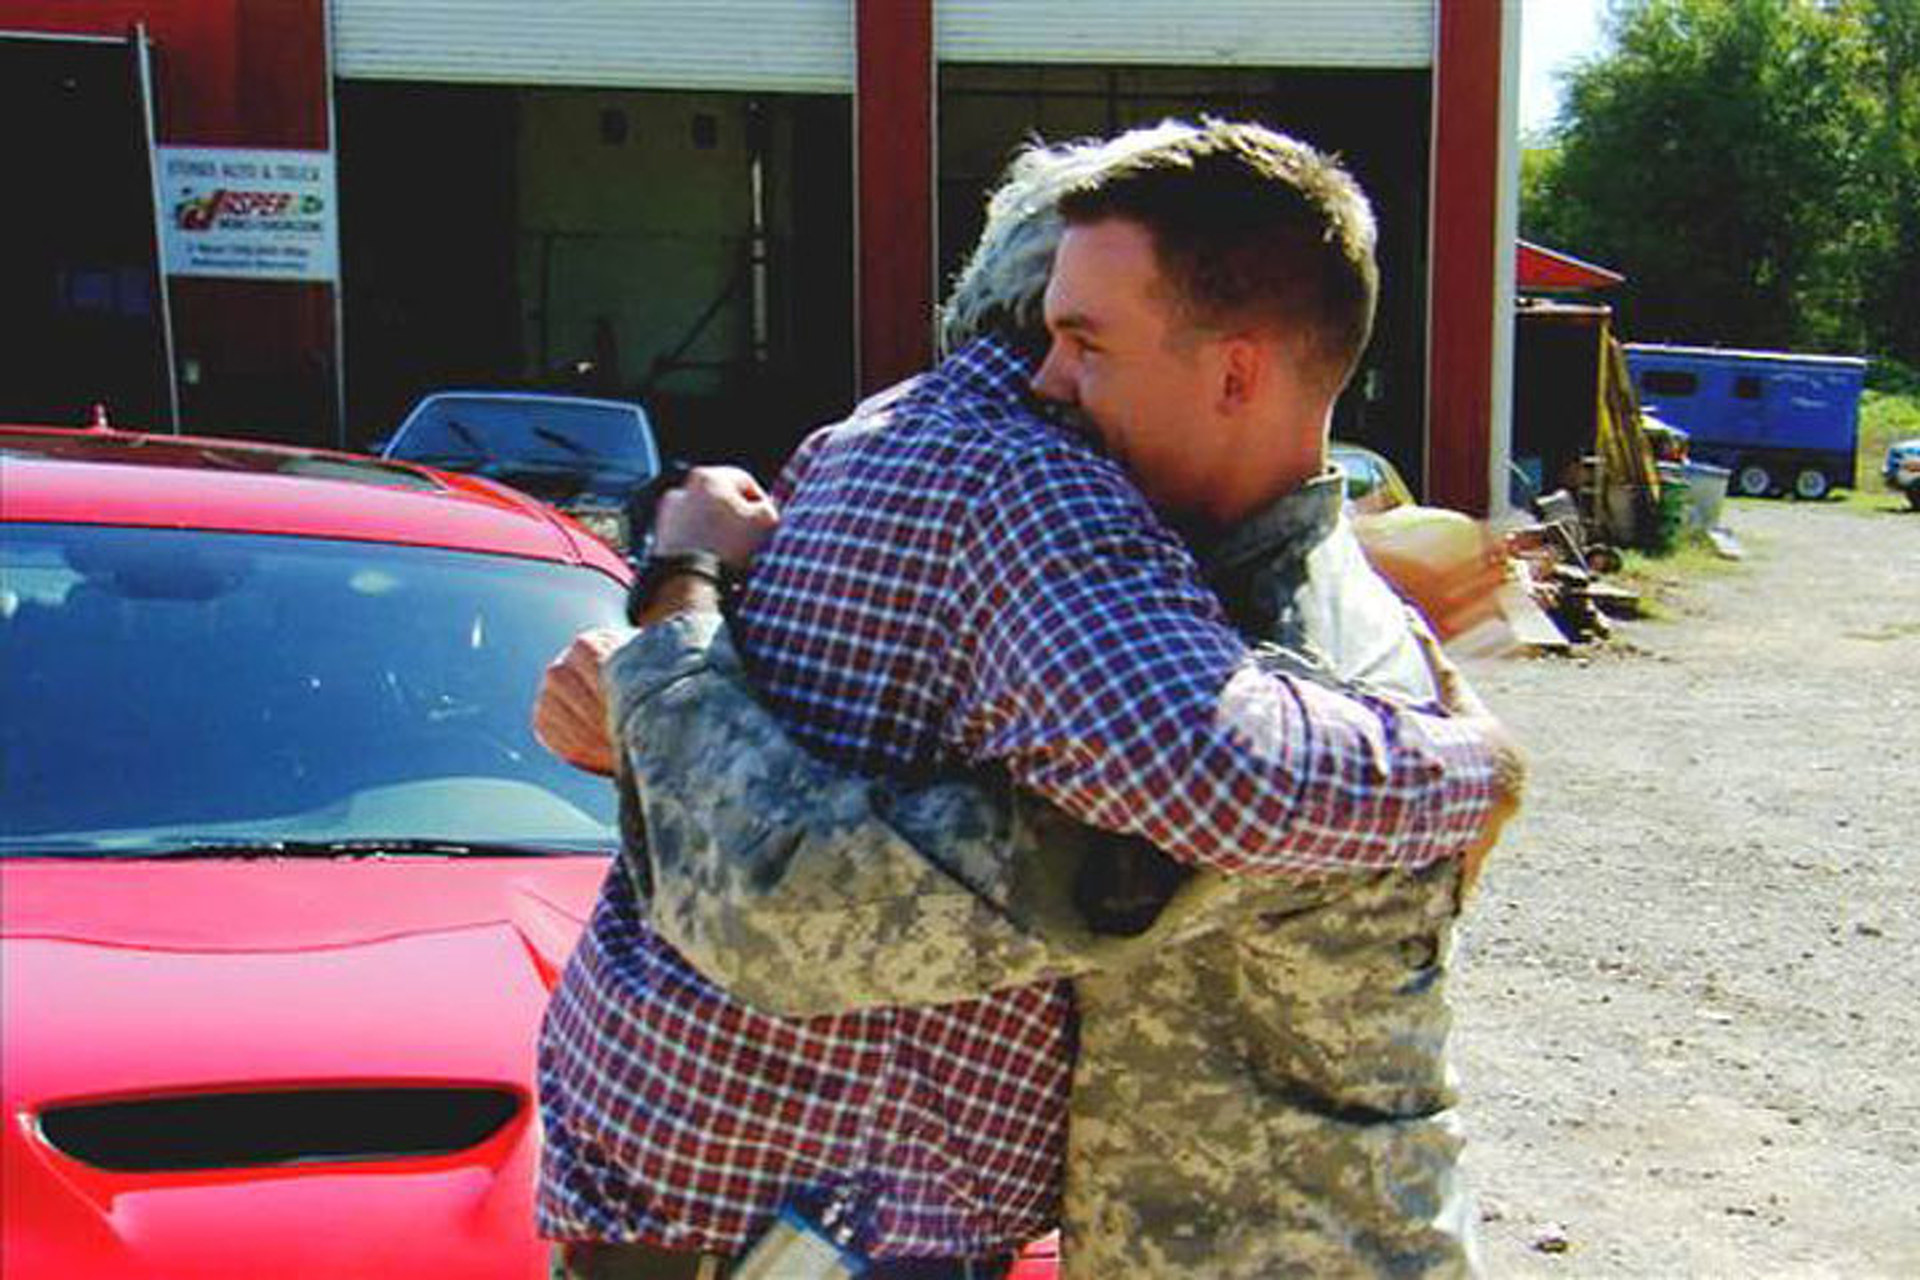 Watch Jay Leno Give A Challenger Hellcat to an Army Vet